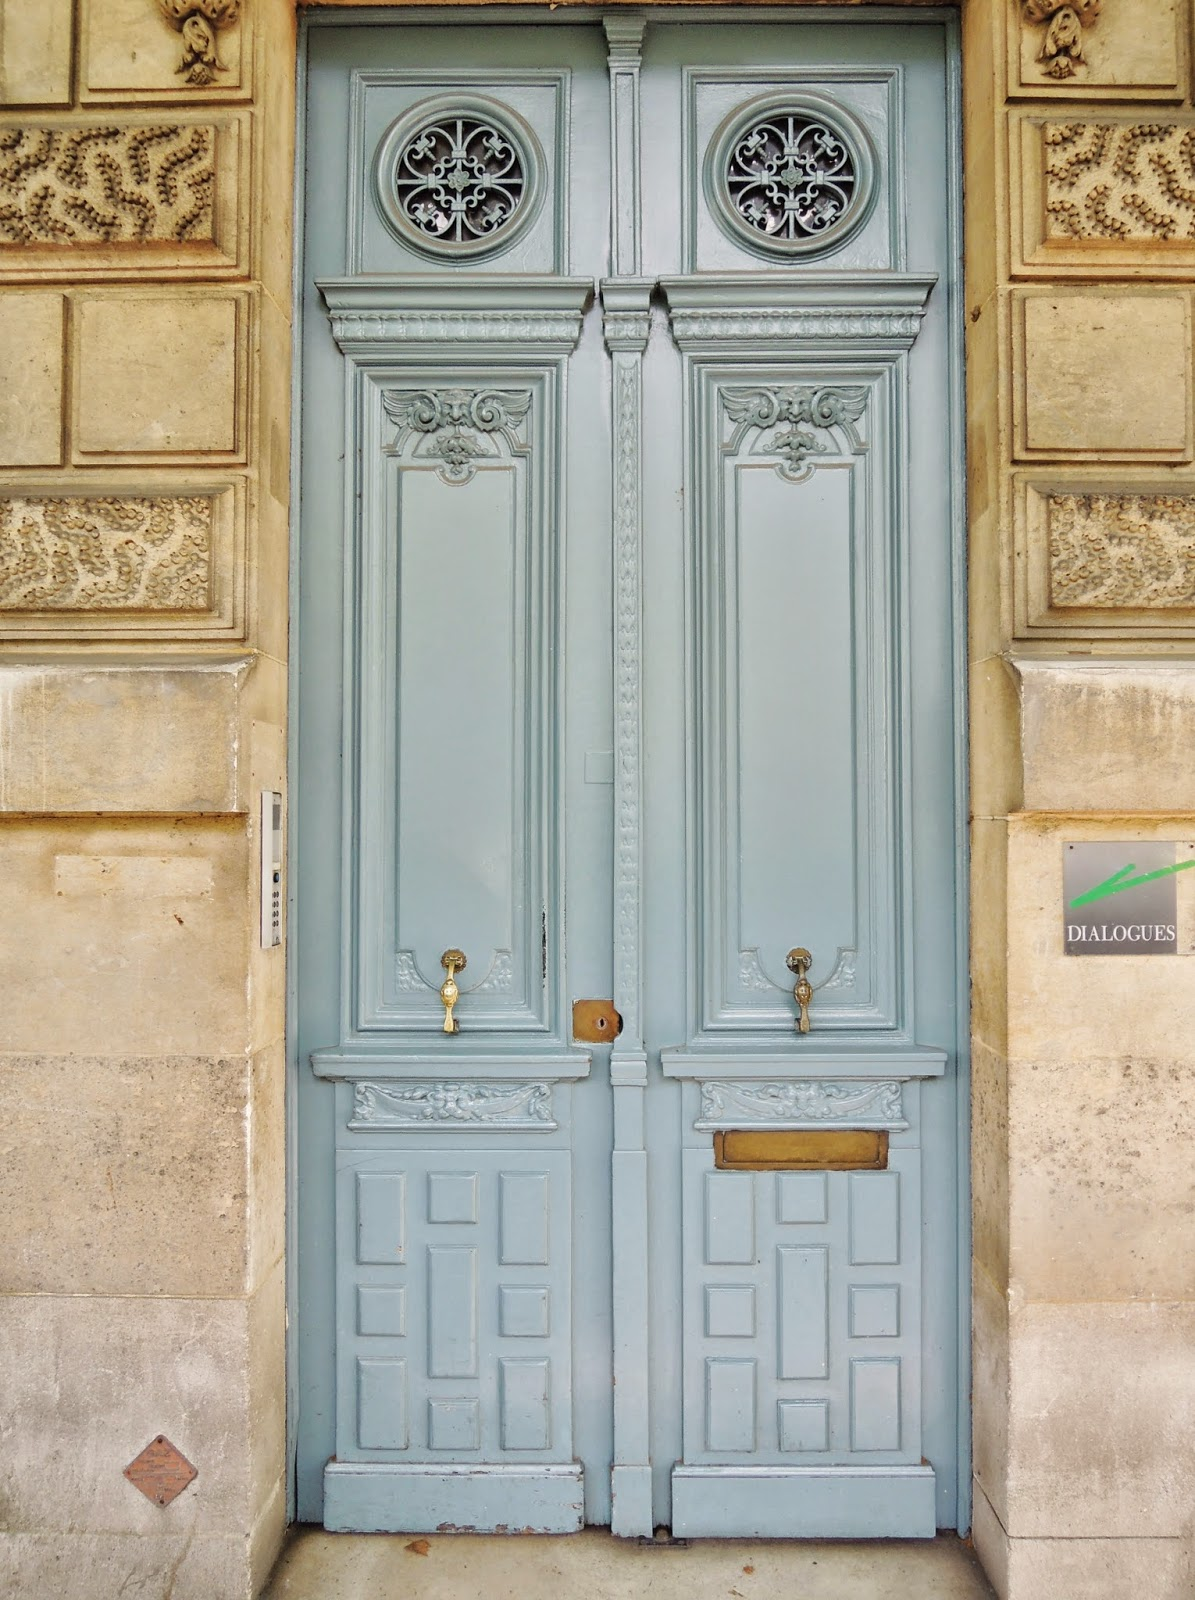 Paris, door